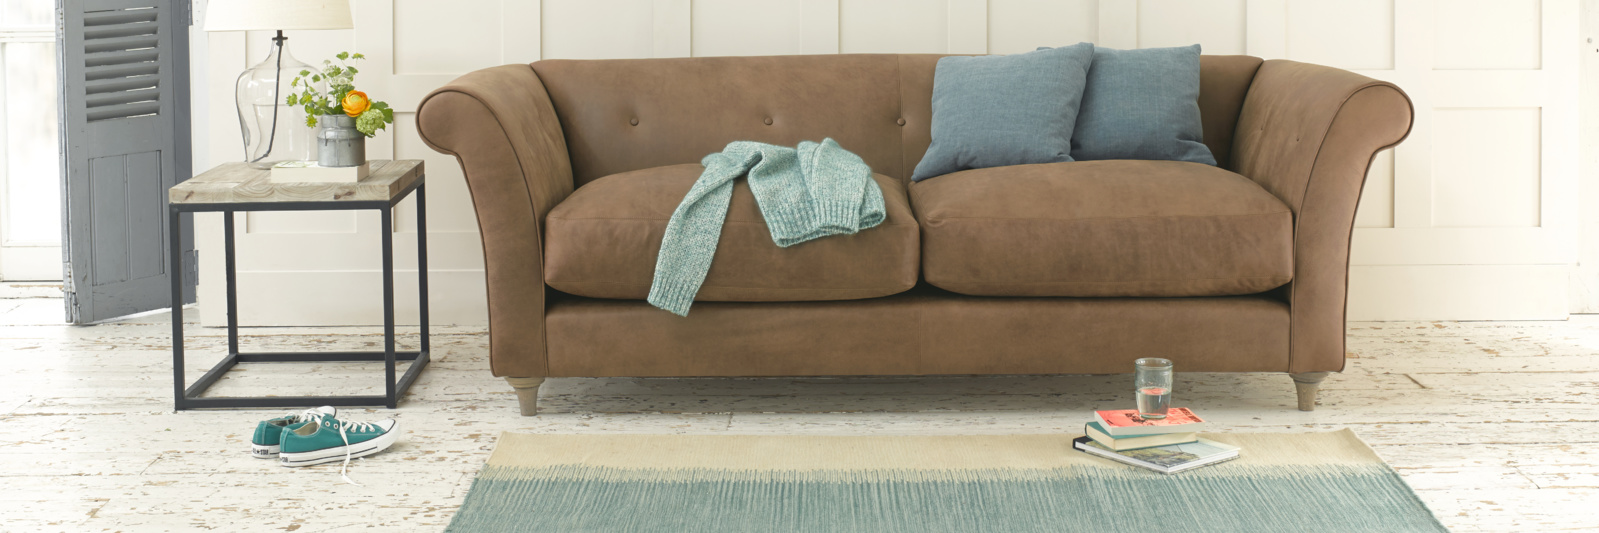 Chester brown leather sofa